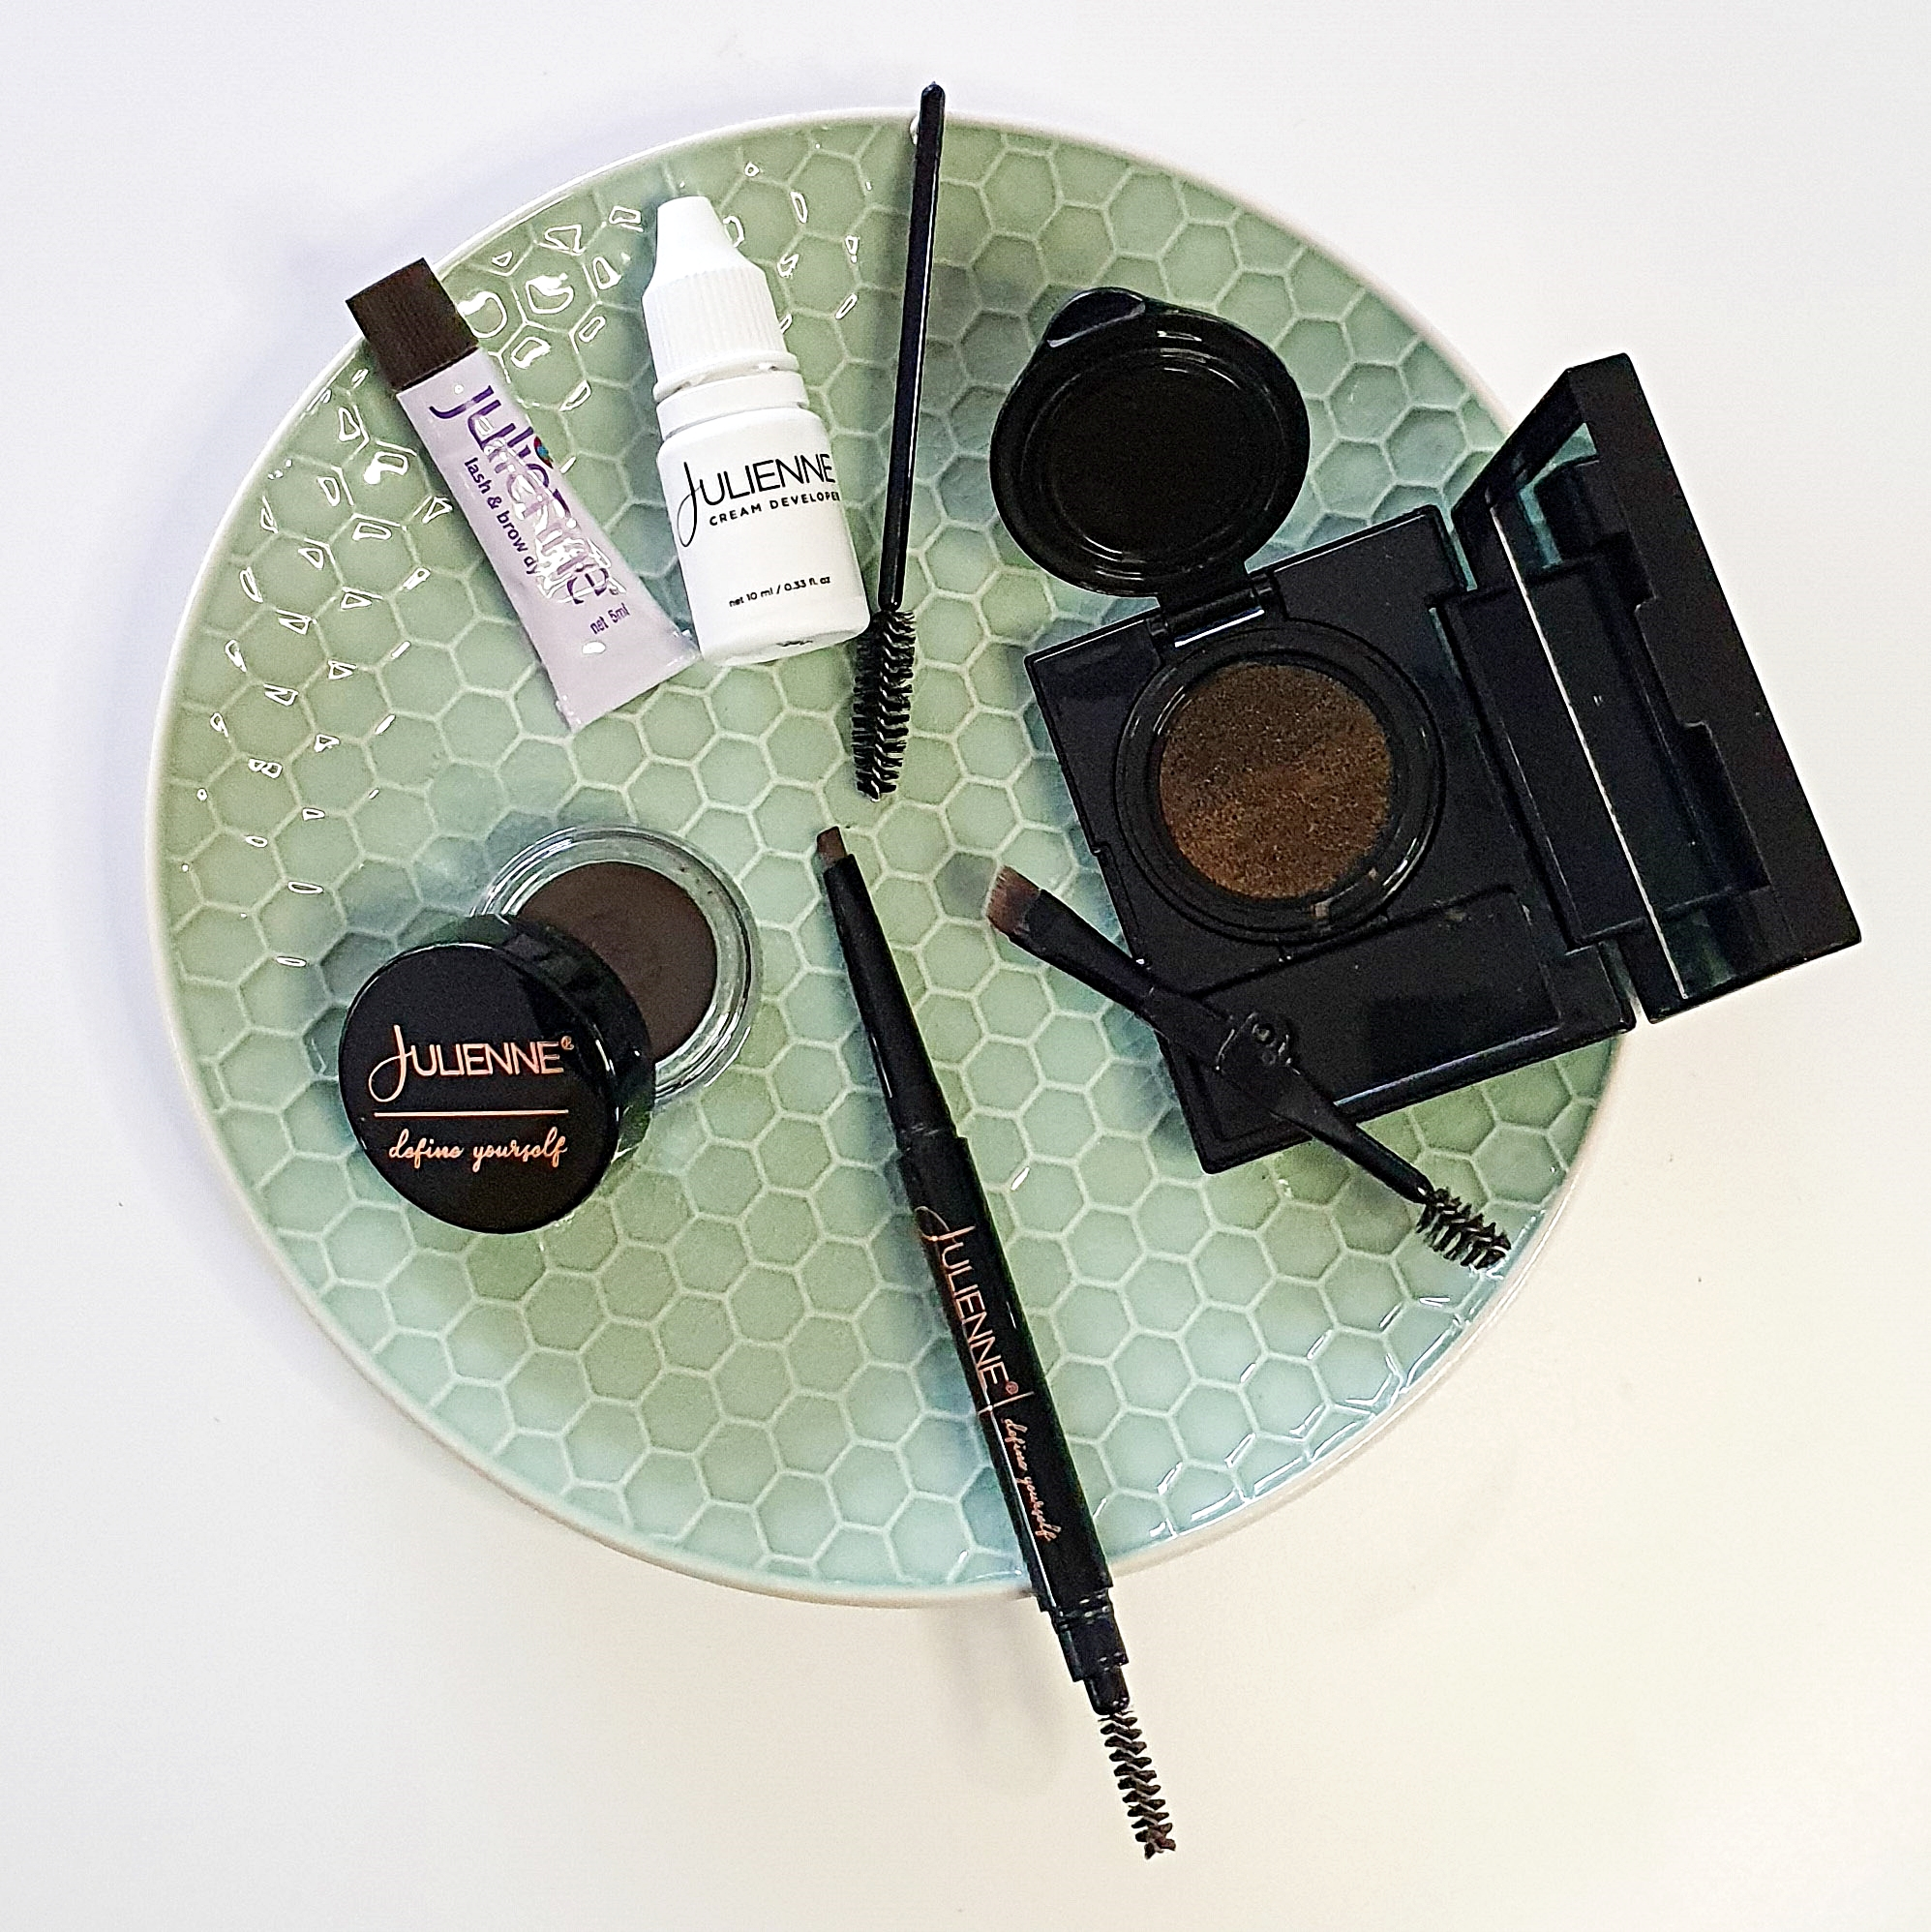 JULIENNE BROW PRODUCTS